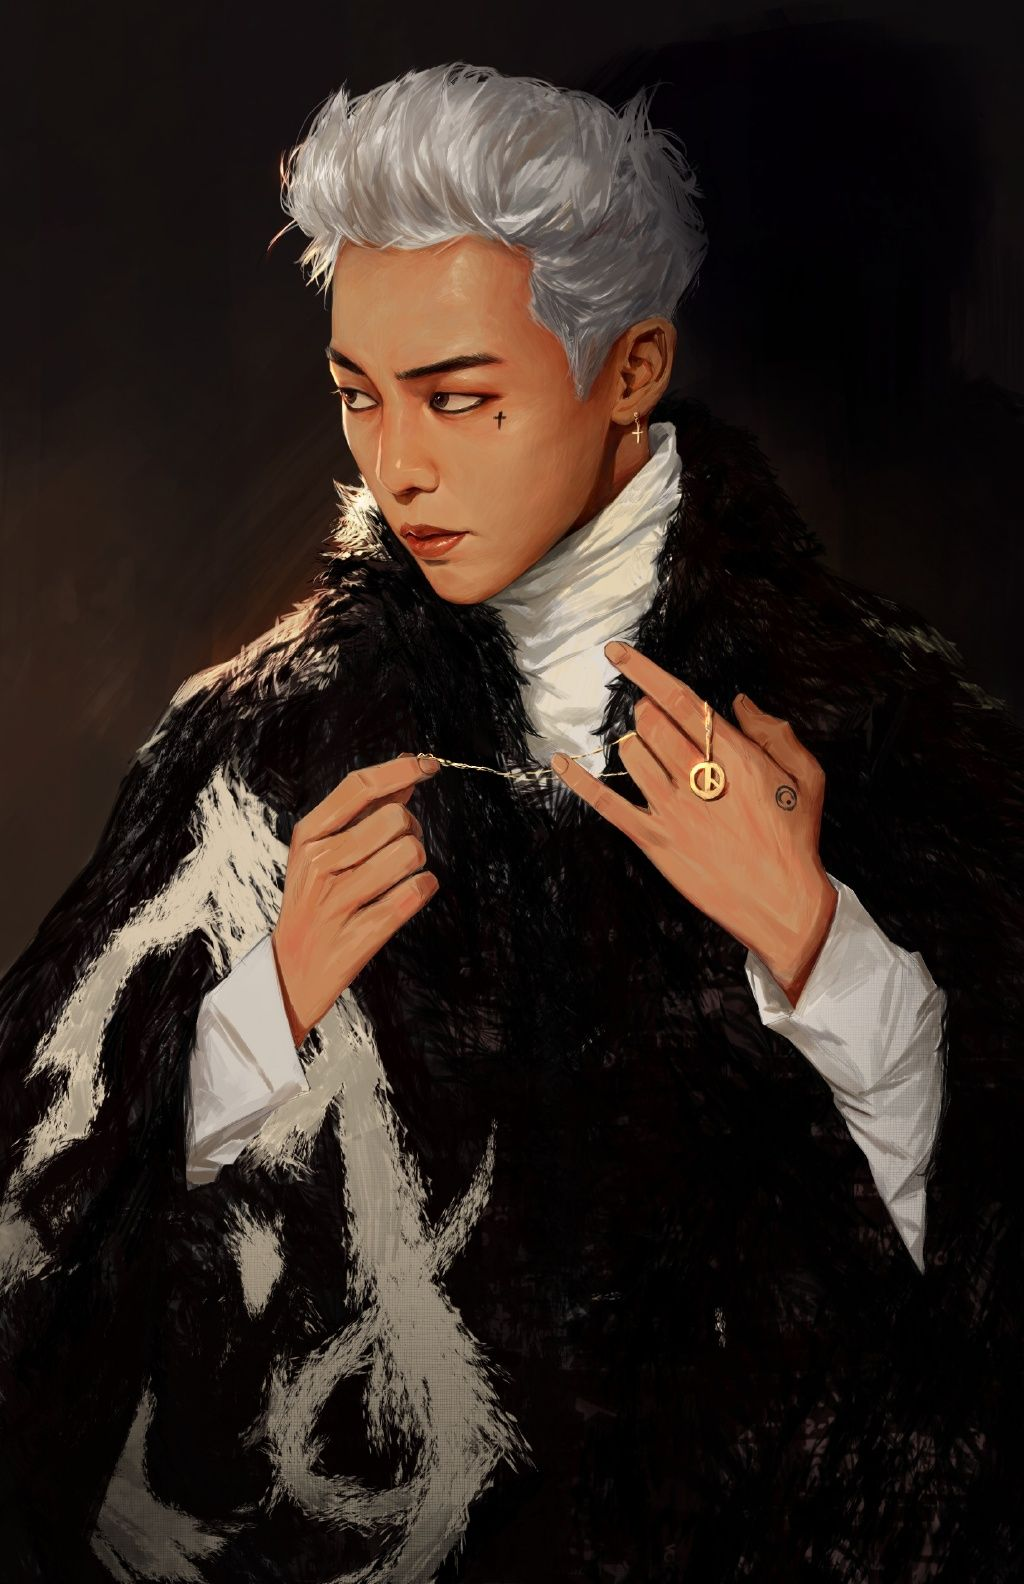 g dragon | Tumblr #gd #fanart | GD [fan art] | Dragons ...